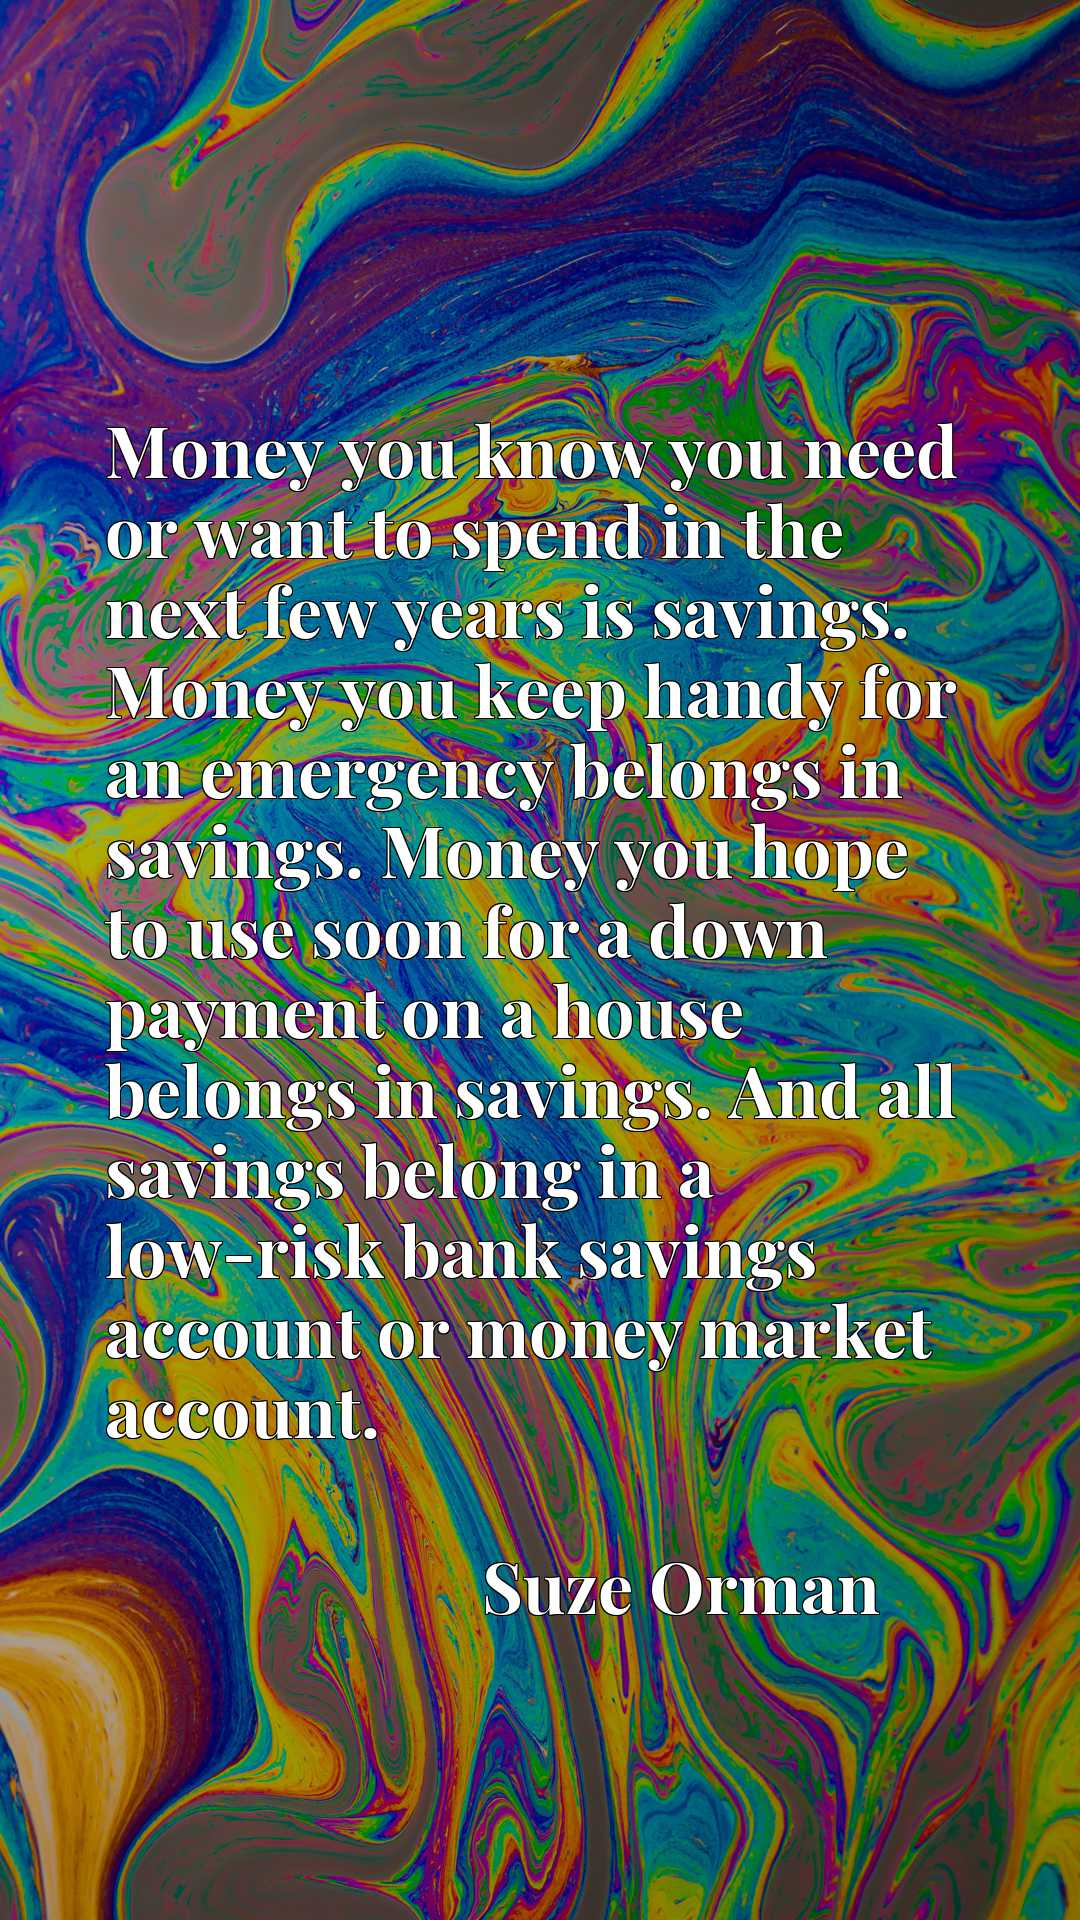 Money you know you need or want to spend in the next few years is savings. Money you keep handy for an emergency belongs in savings. Money you hope to use soon for a down payment on a house belongs in savings. And all savings belong in a low-risk bank savings account or money market account.